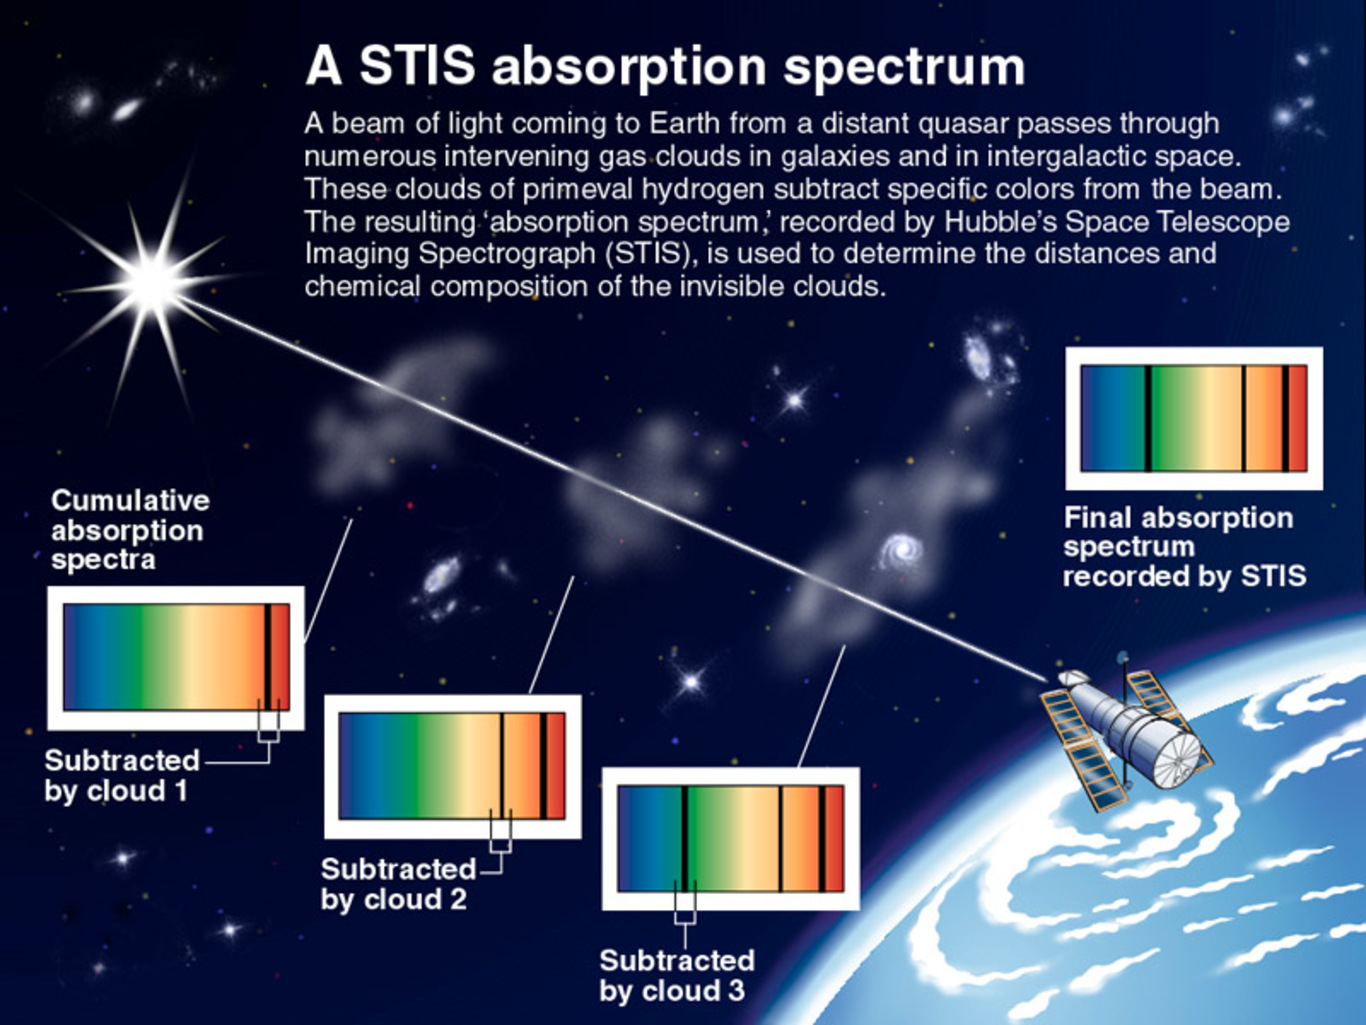 Light from a distant quasar passes through intervening gas clouds in galaxies and in intergalactic space. These clouds of primeval hydrogen subtract specific colors from the beam. The resulting 'absorption spectrum' can help determine the distances and chemical composition of the invisible clouds. - Image Credit: NASA/STScI